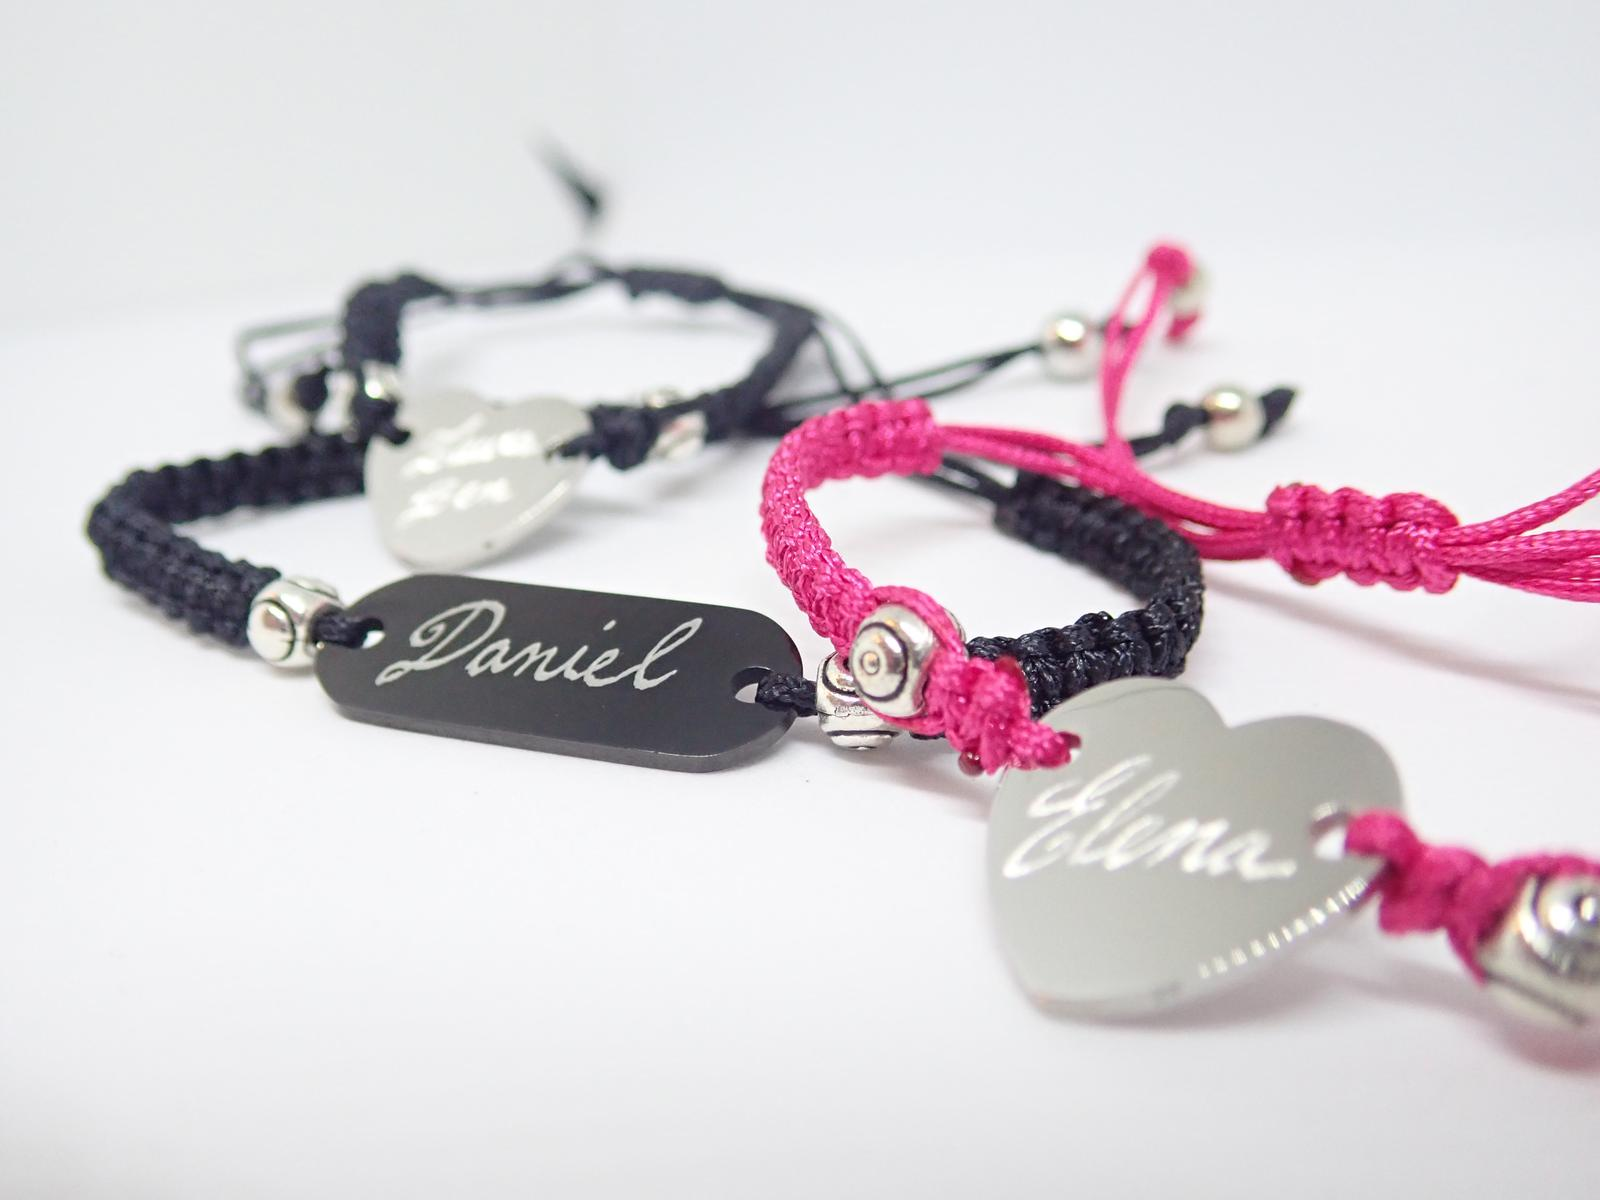 Hand Engraved Personalised Bracelets